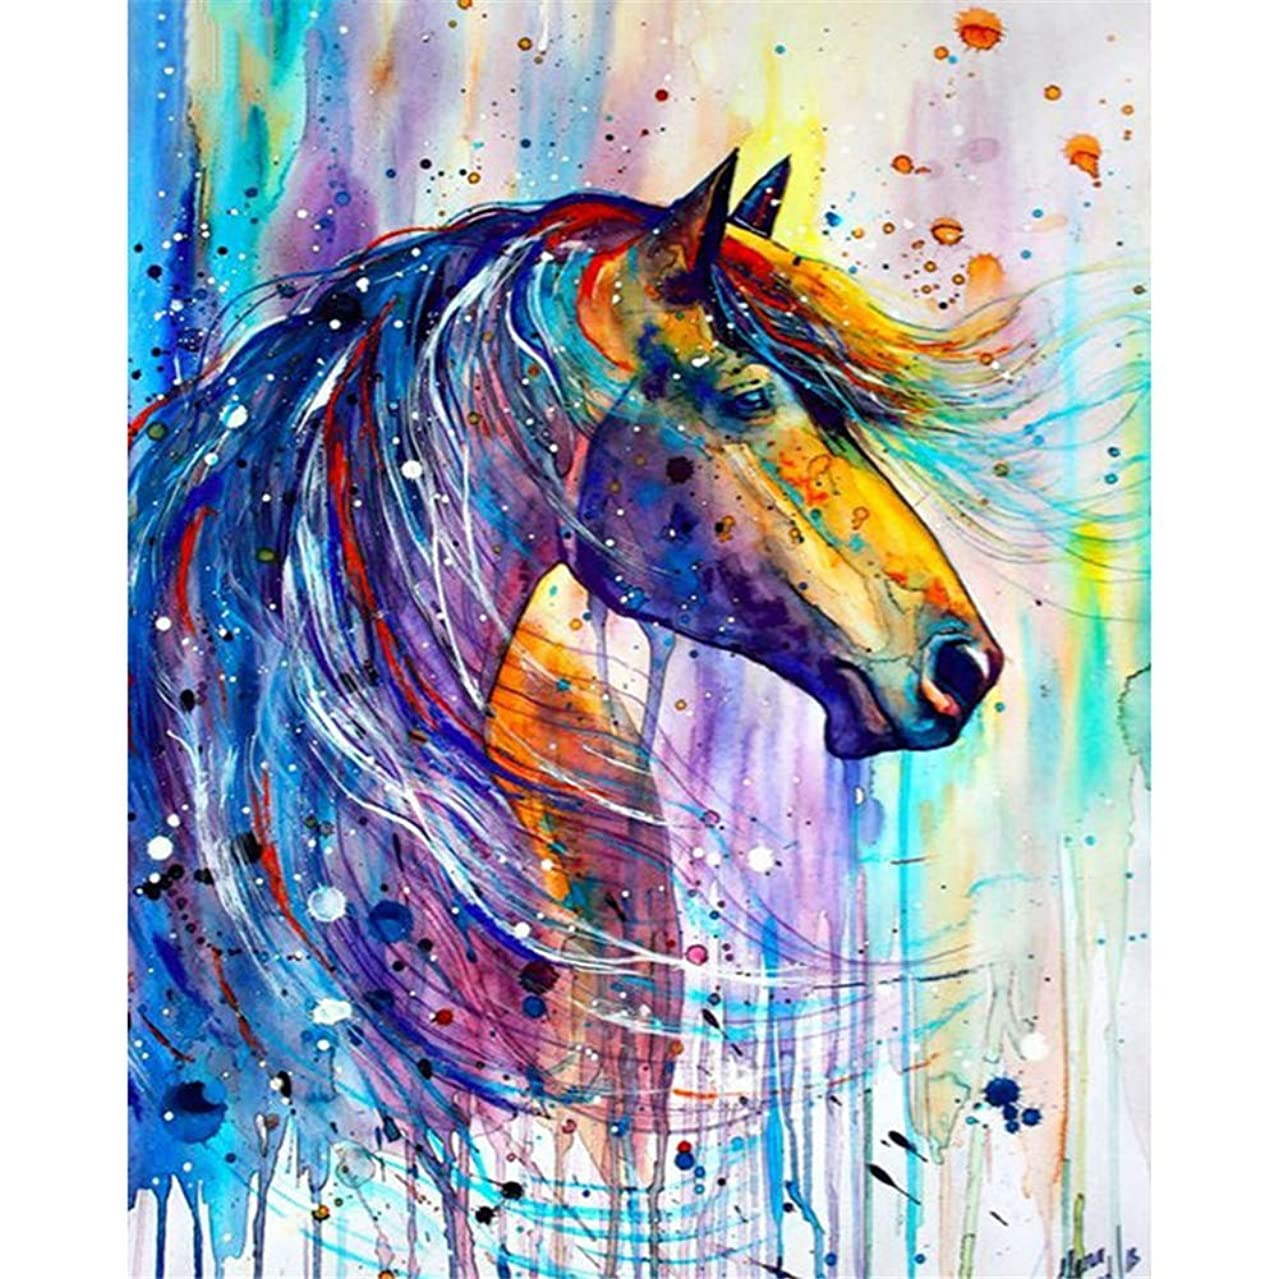 5D Full Drill Diamond Painting Kit, KISSBUTY DIY Diamond Rhinestone Painting Kits for Adults and Beginner Embroidery Arts Craft Home Decor, 15.8 X 11.8 Inch (Horse Diamond Painting 2)